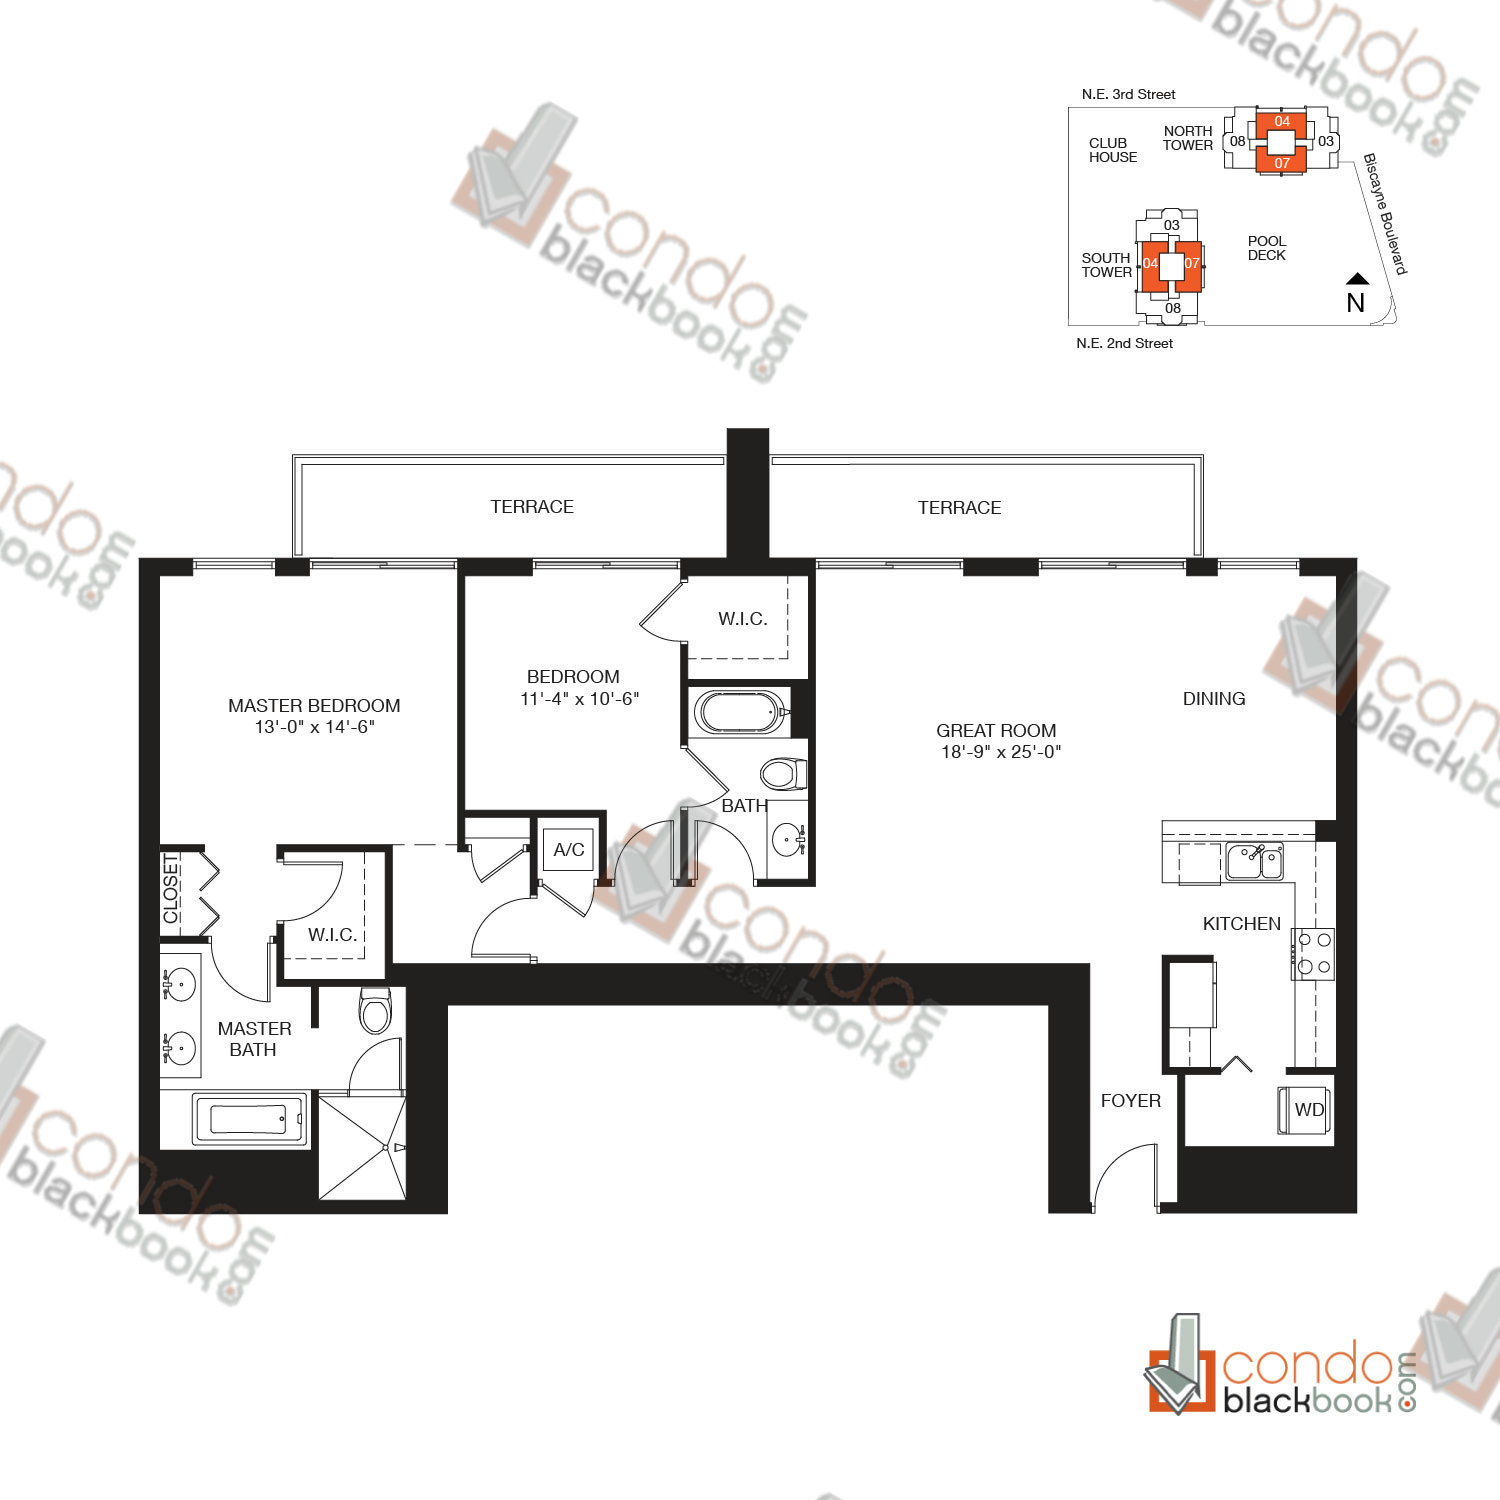 Floor plan for Vizcayne Downtown Miami Miami, model RESIDENCE 9, line 04, 07, 2/2 bedrooms, 1,419 sq ft